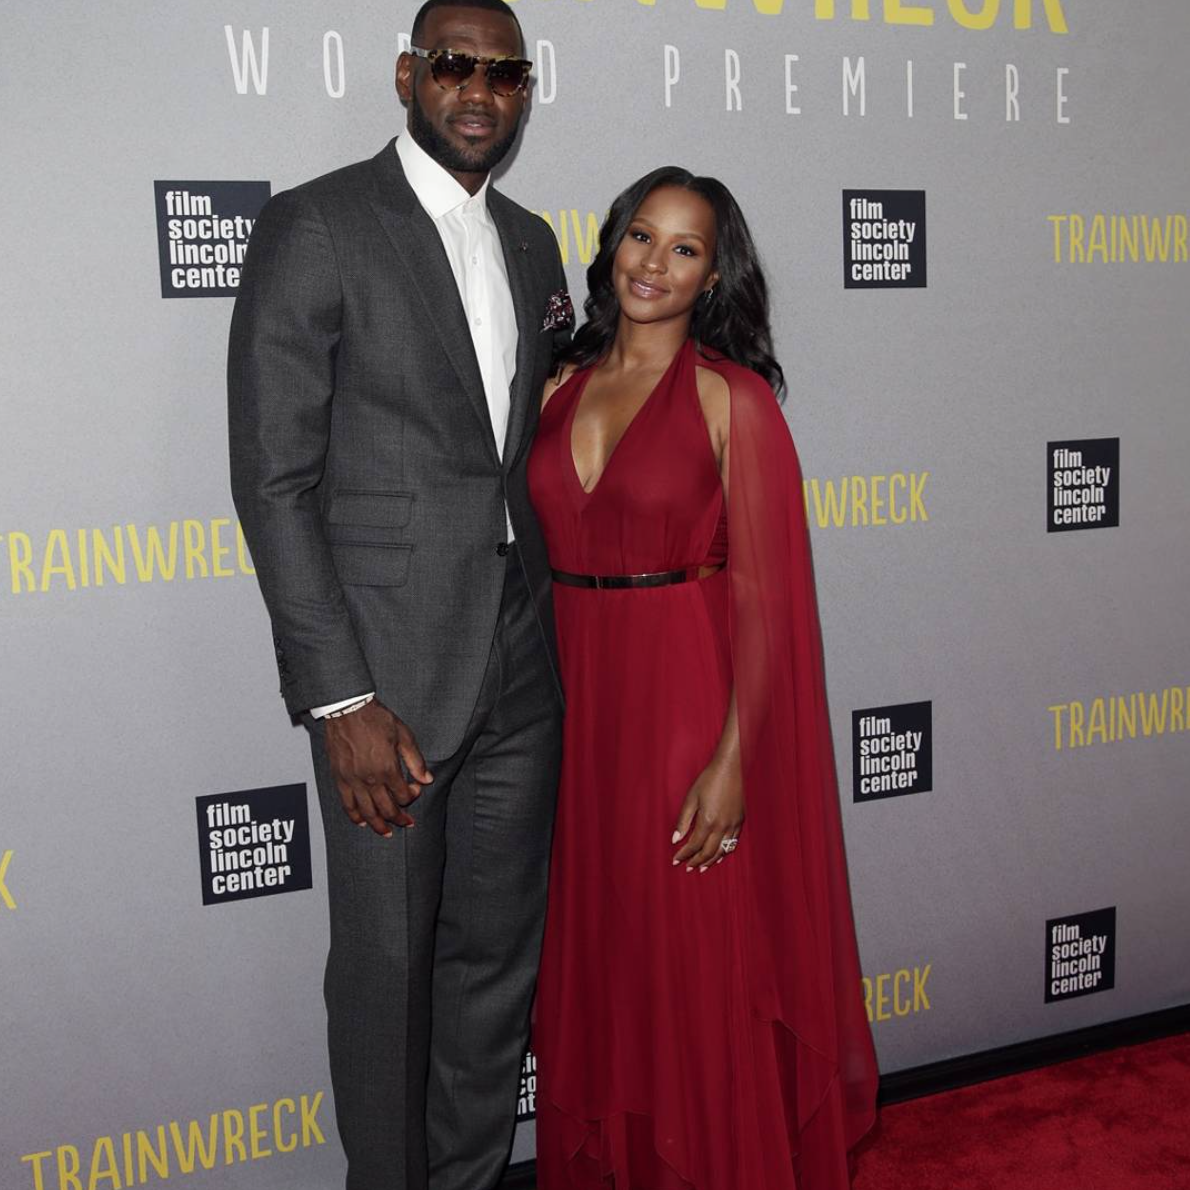 LeBron James News, Pictures, and Videos